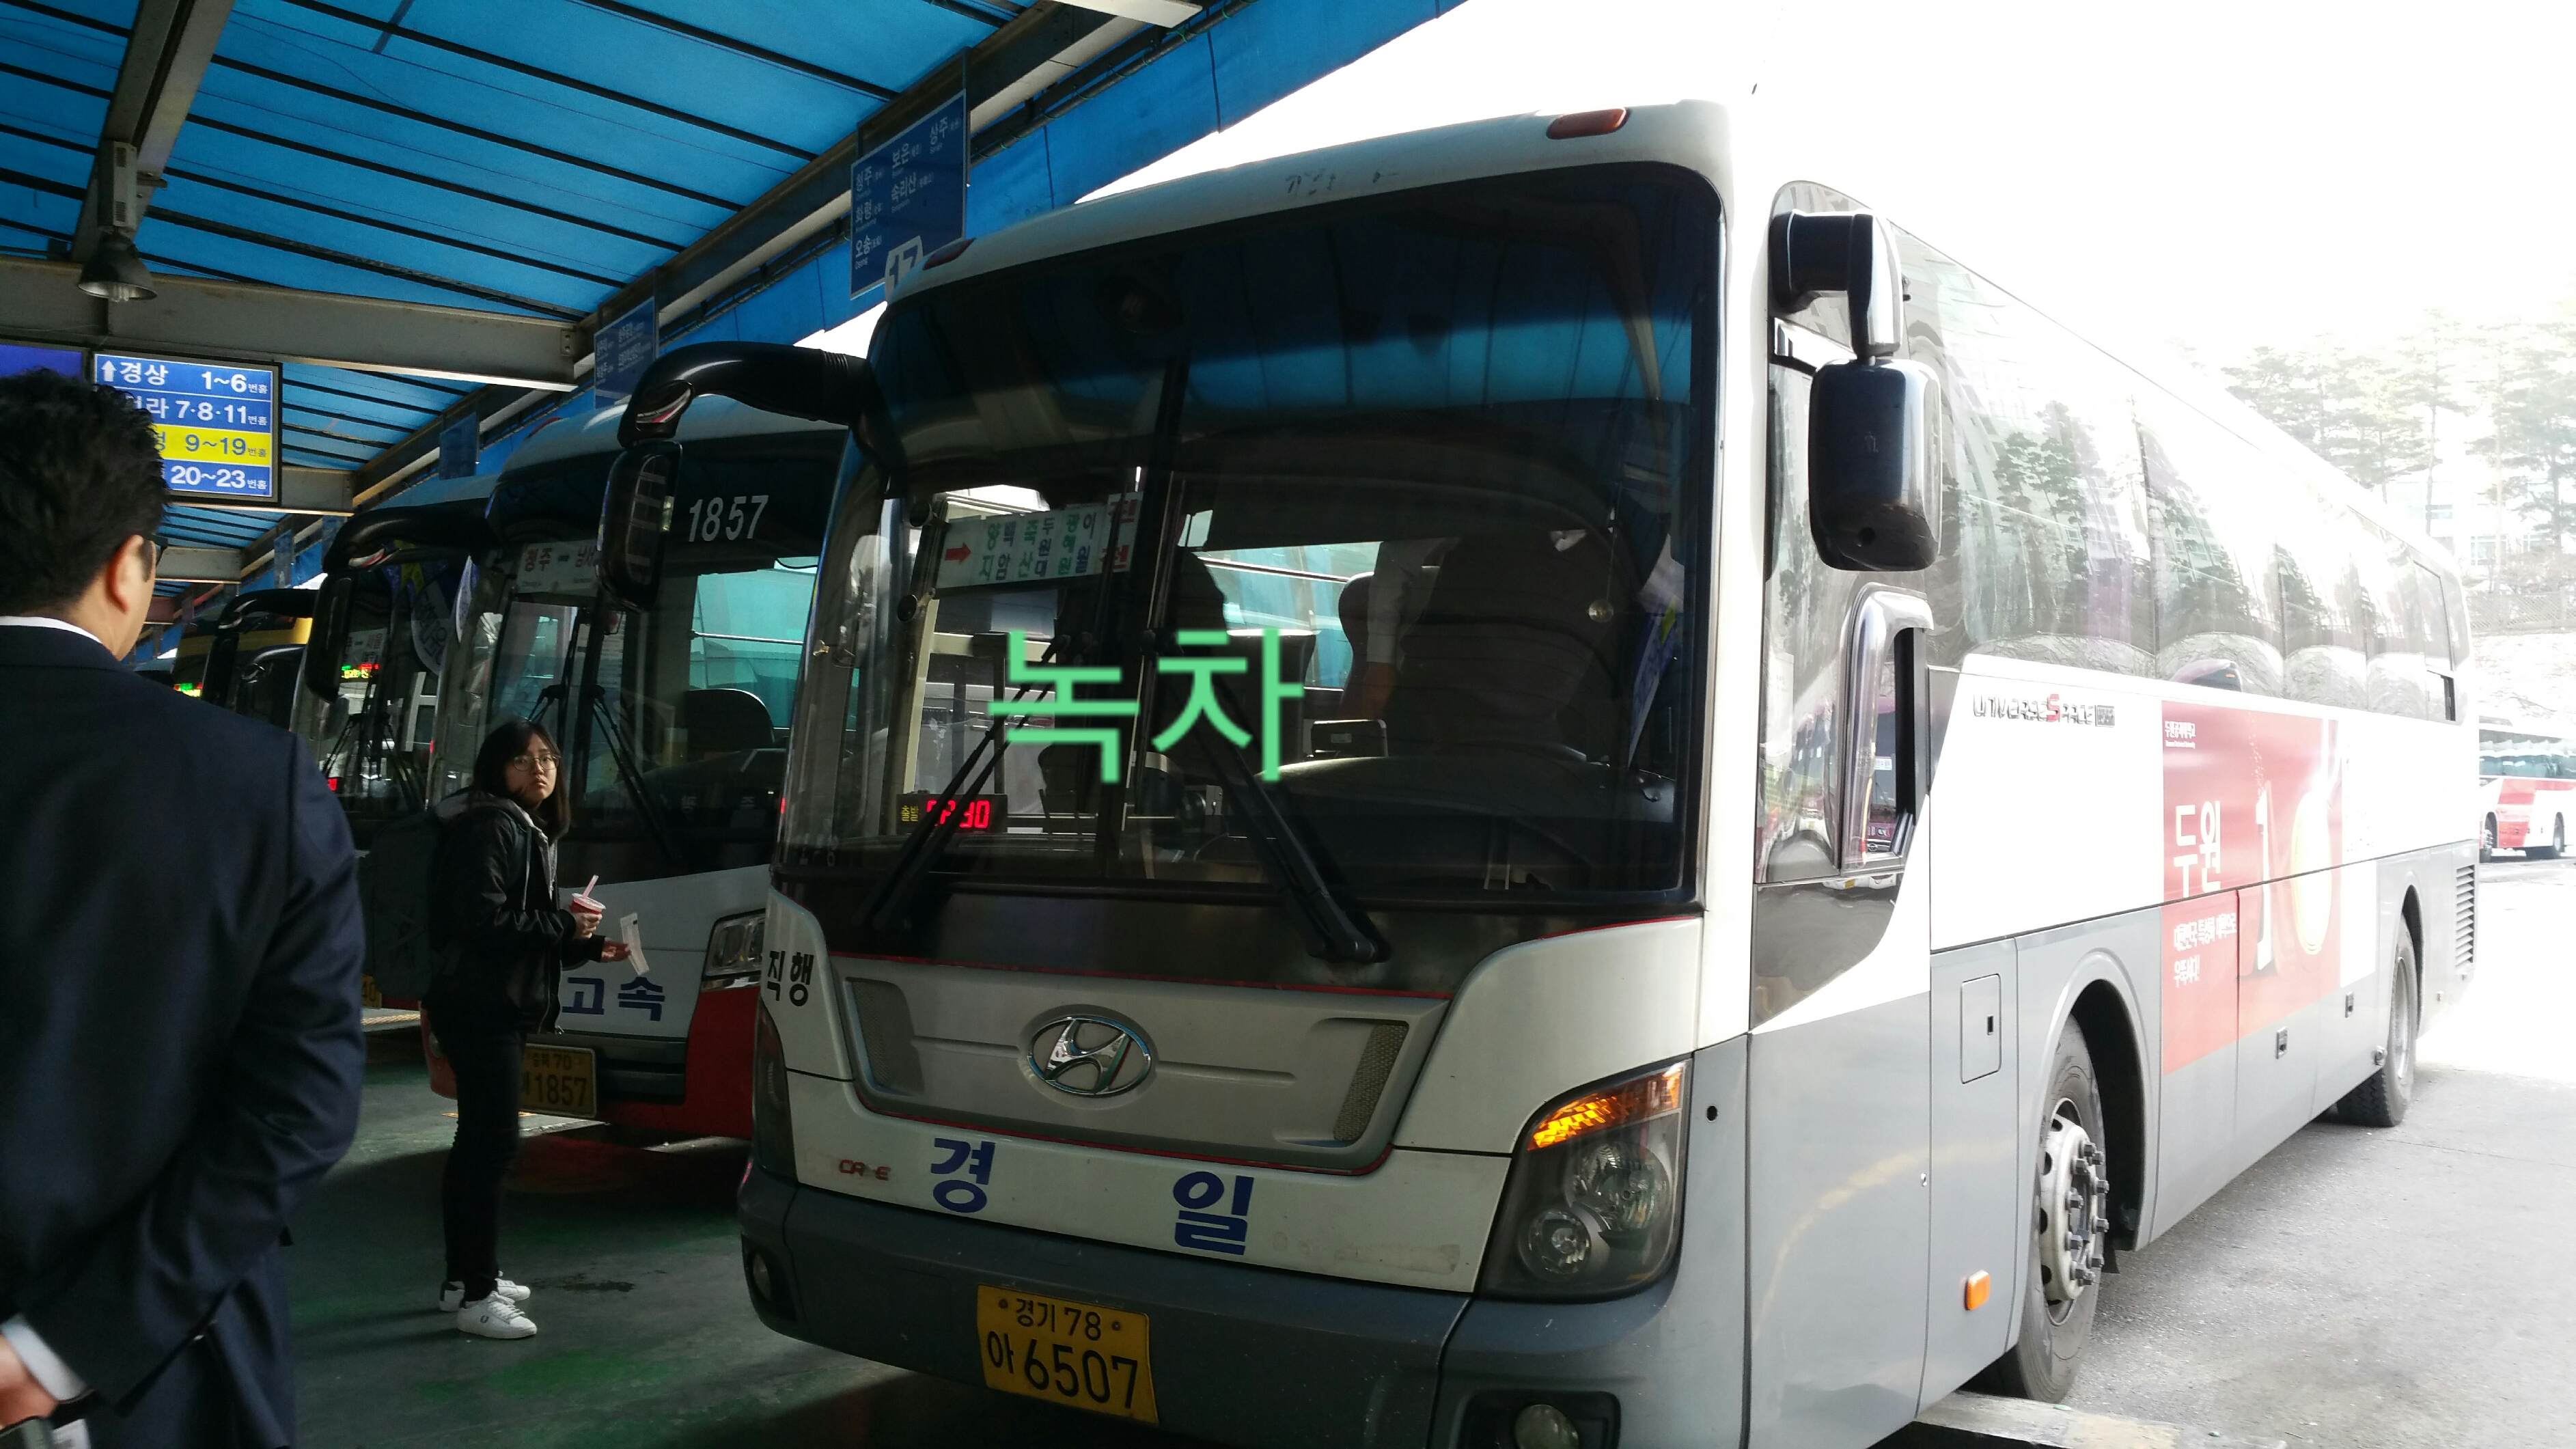 Express bus reservation